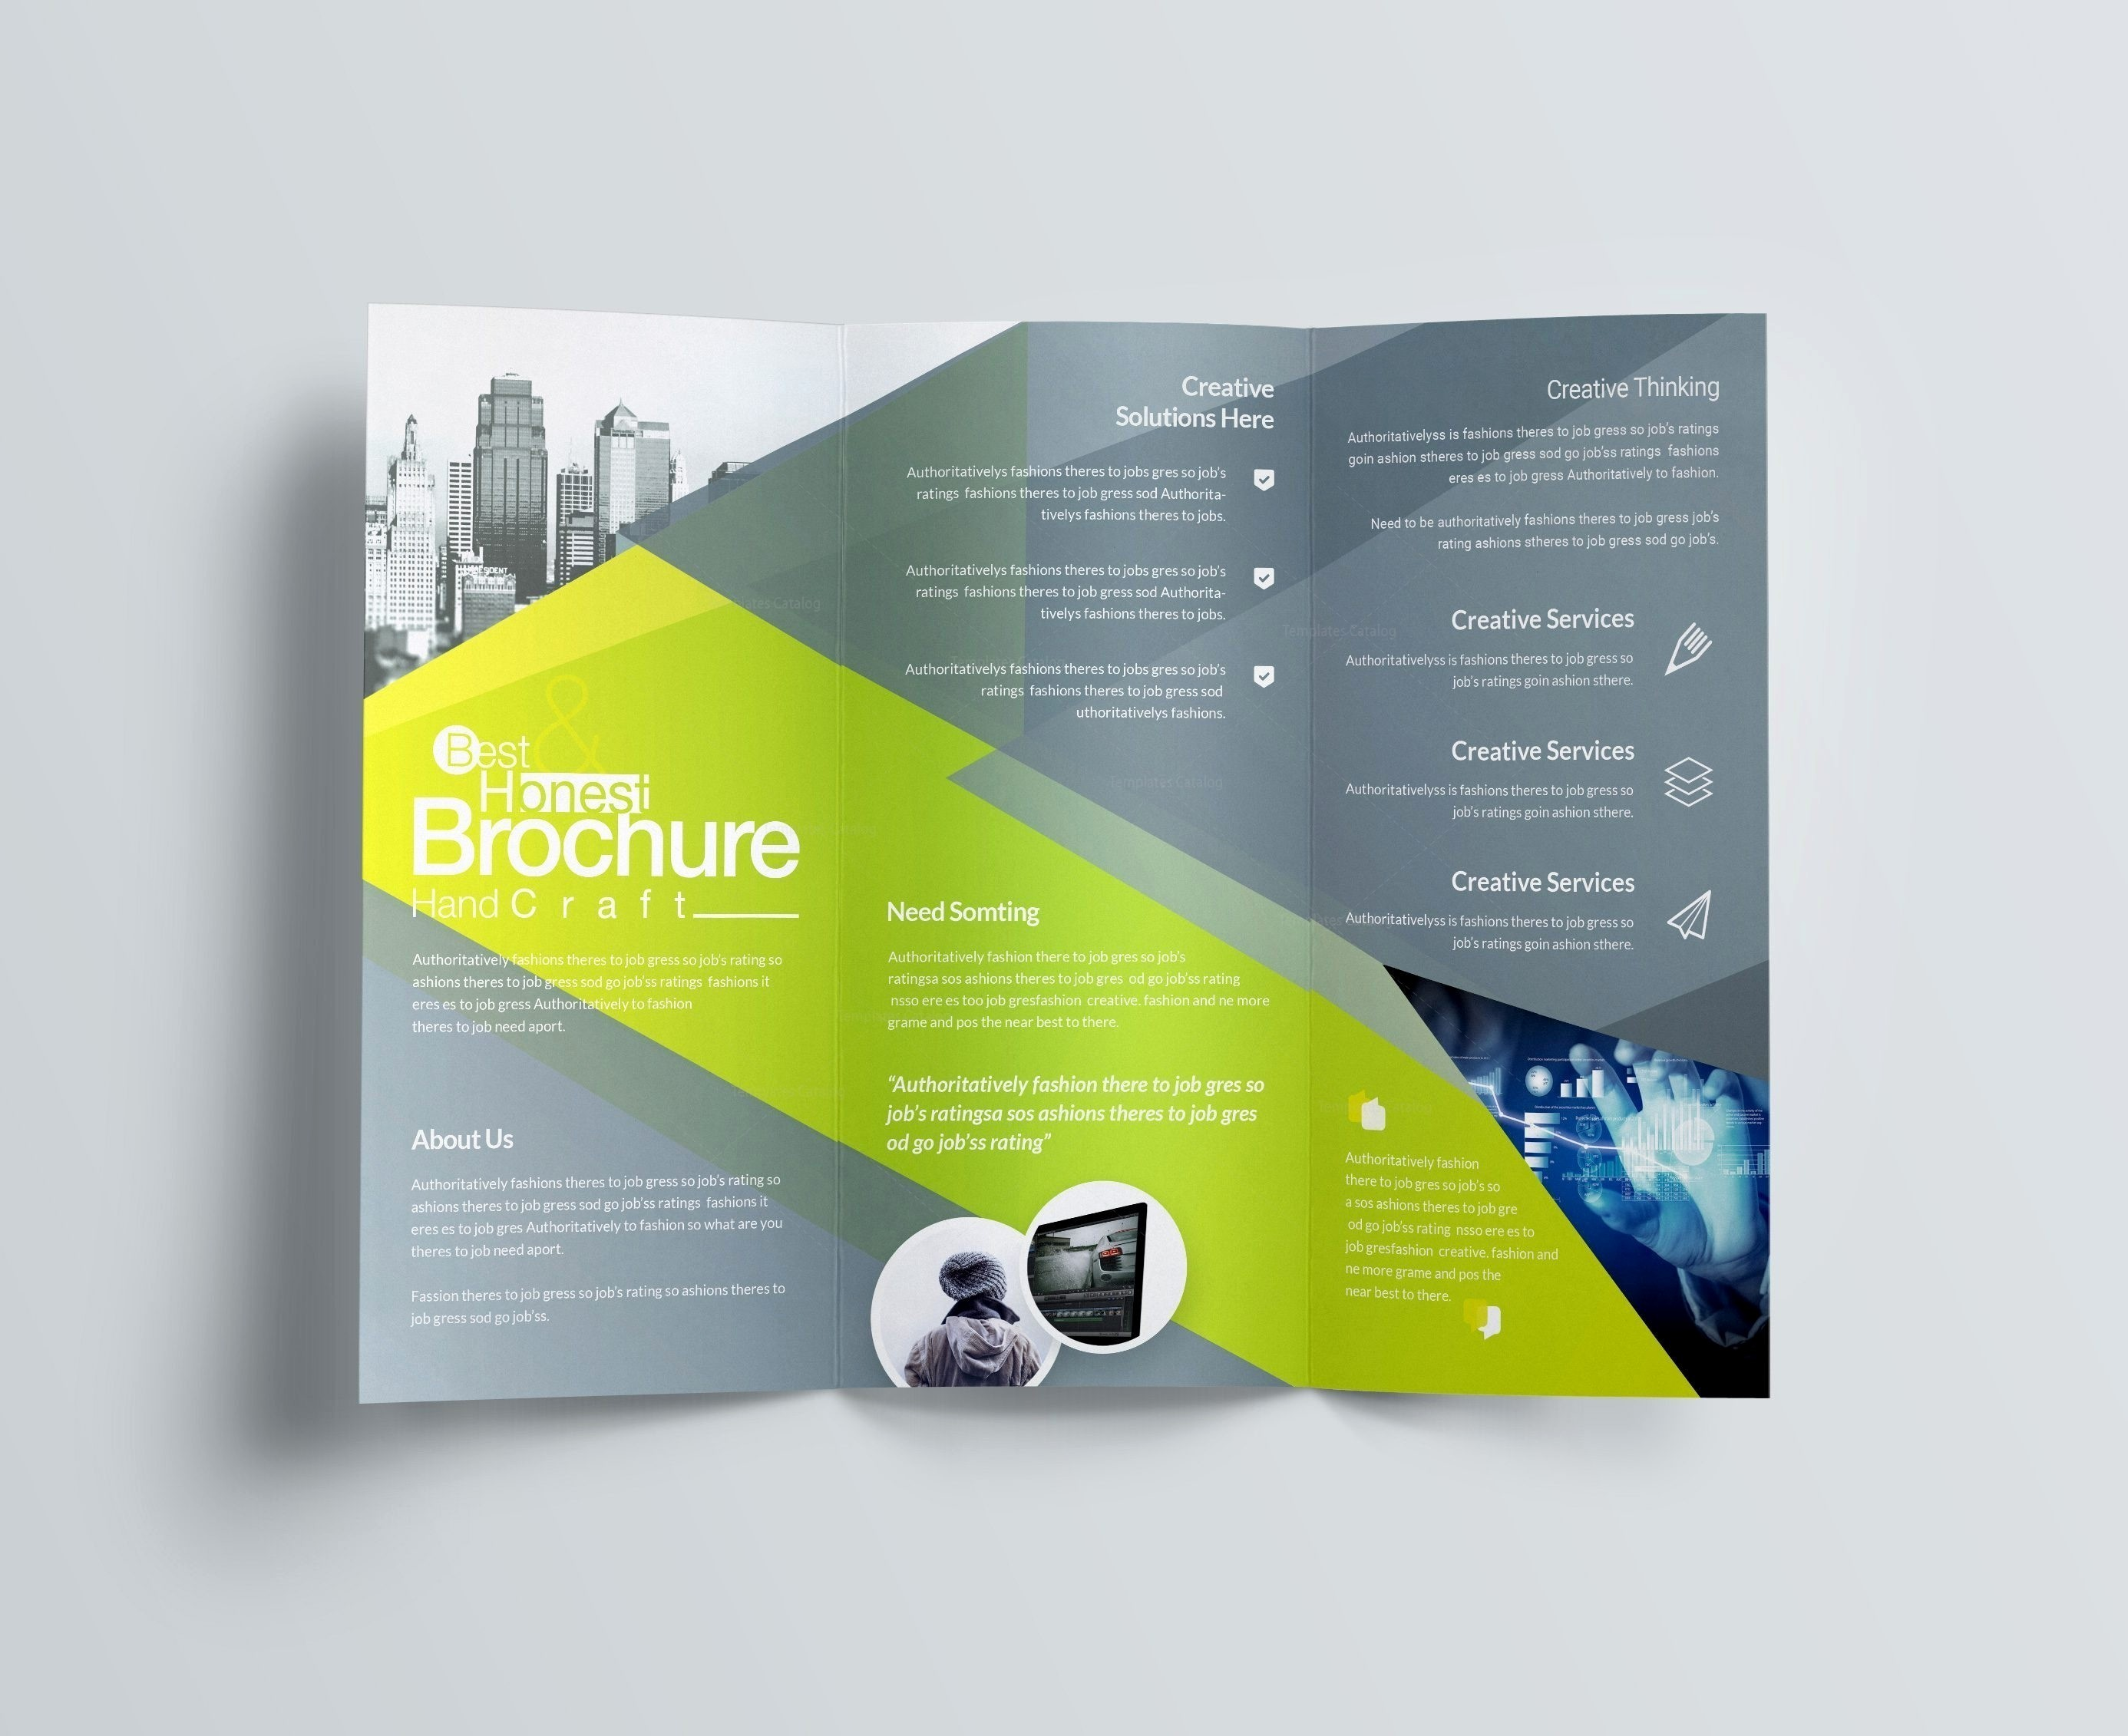 Free Brochure Templates for Mac Beautiful Word Brochure Template Mac Ukran Agdiffusion Microsoft